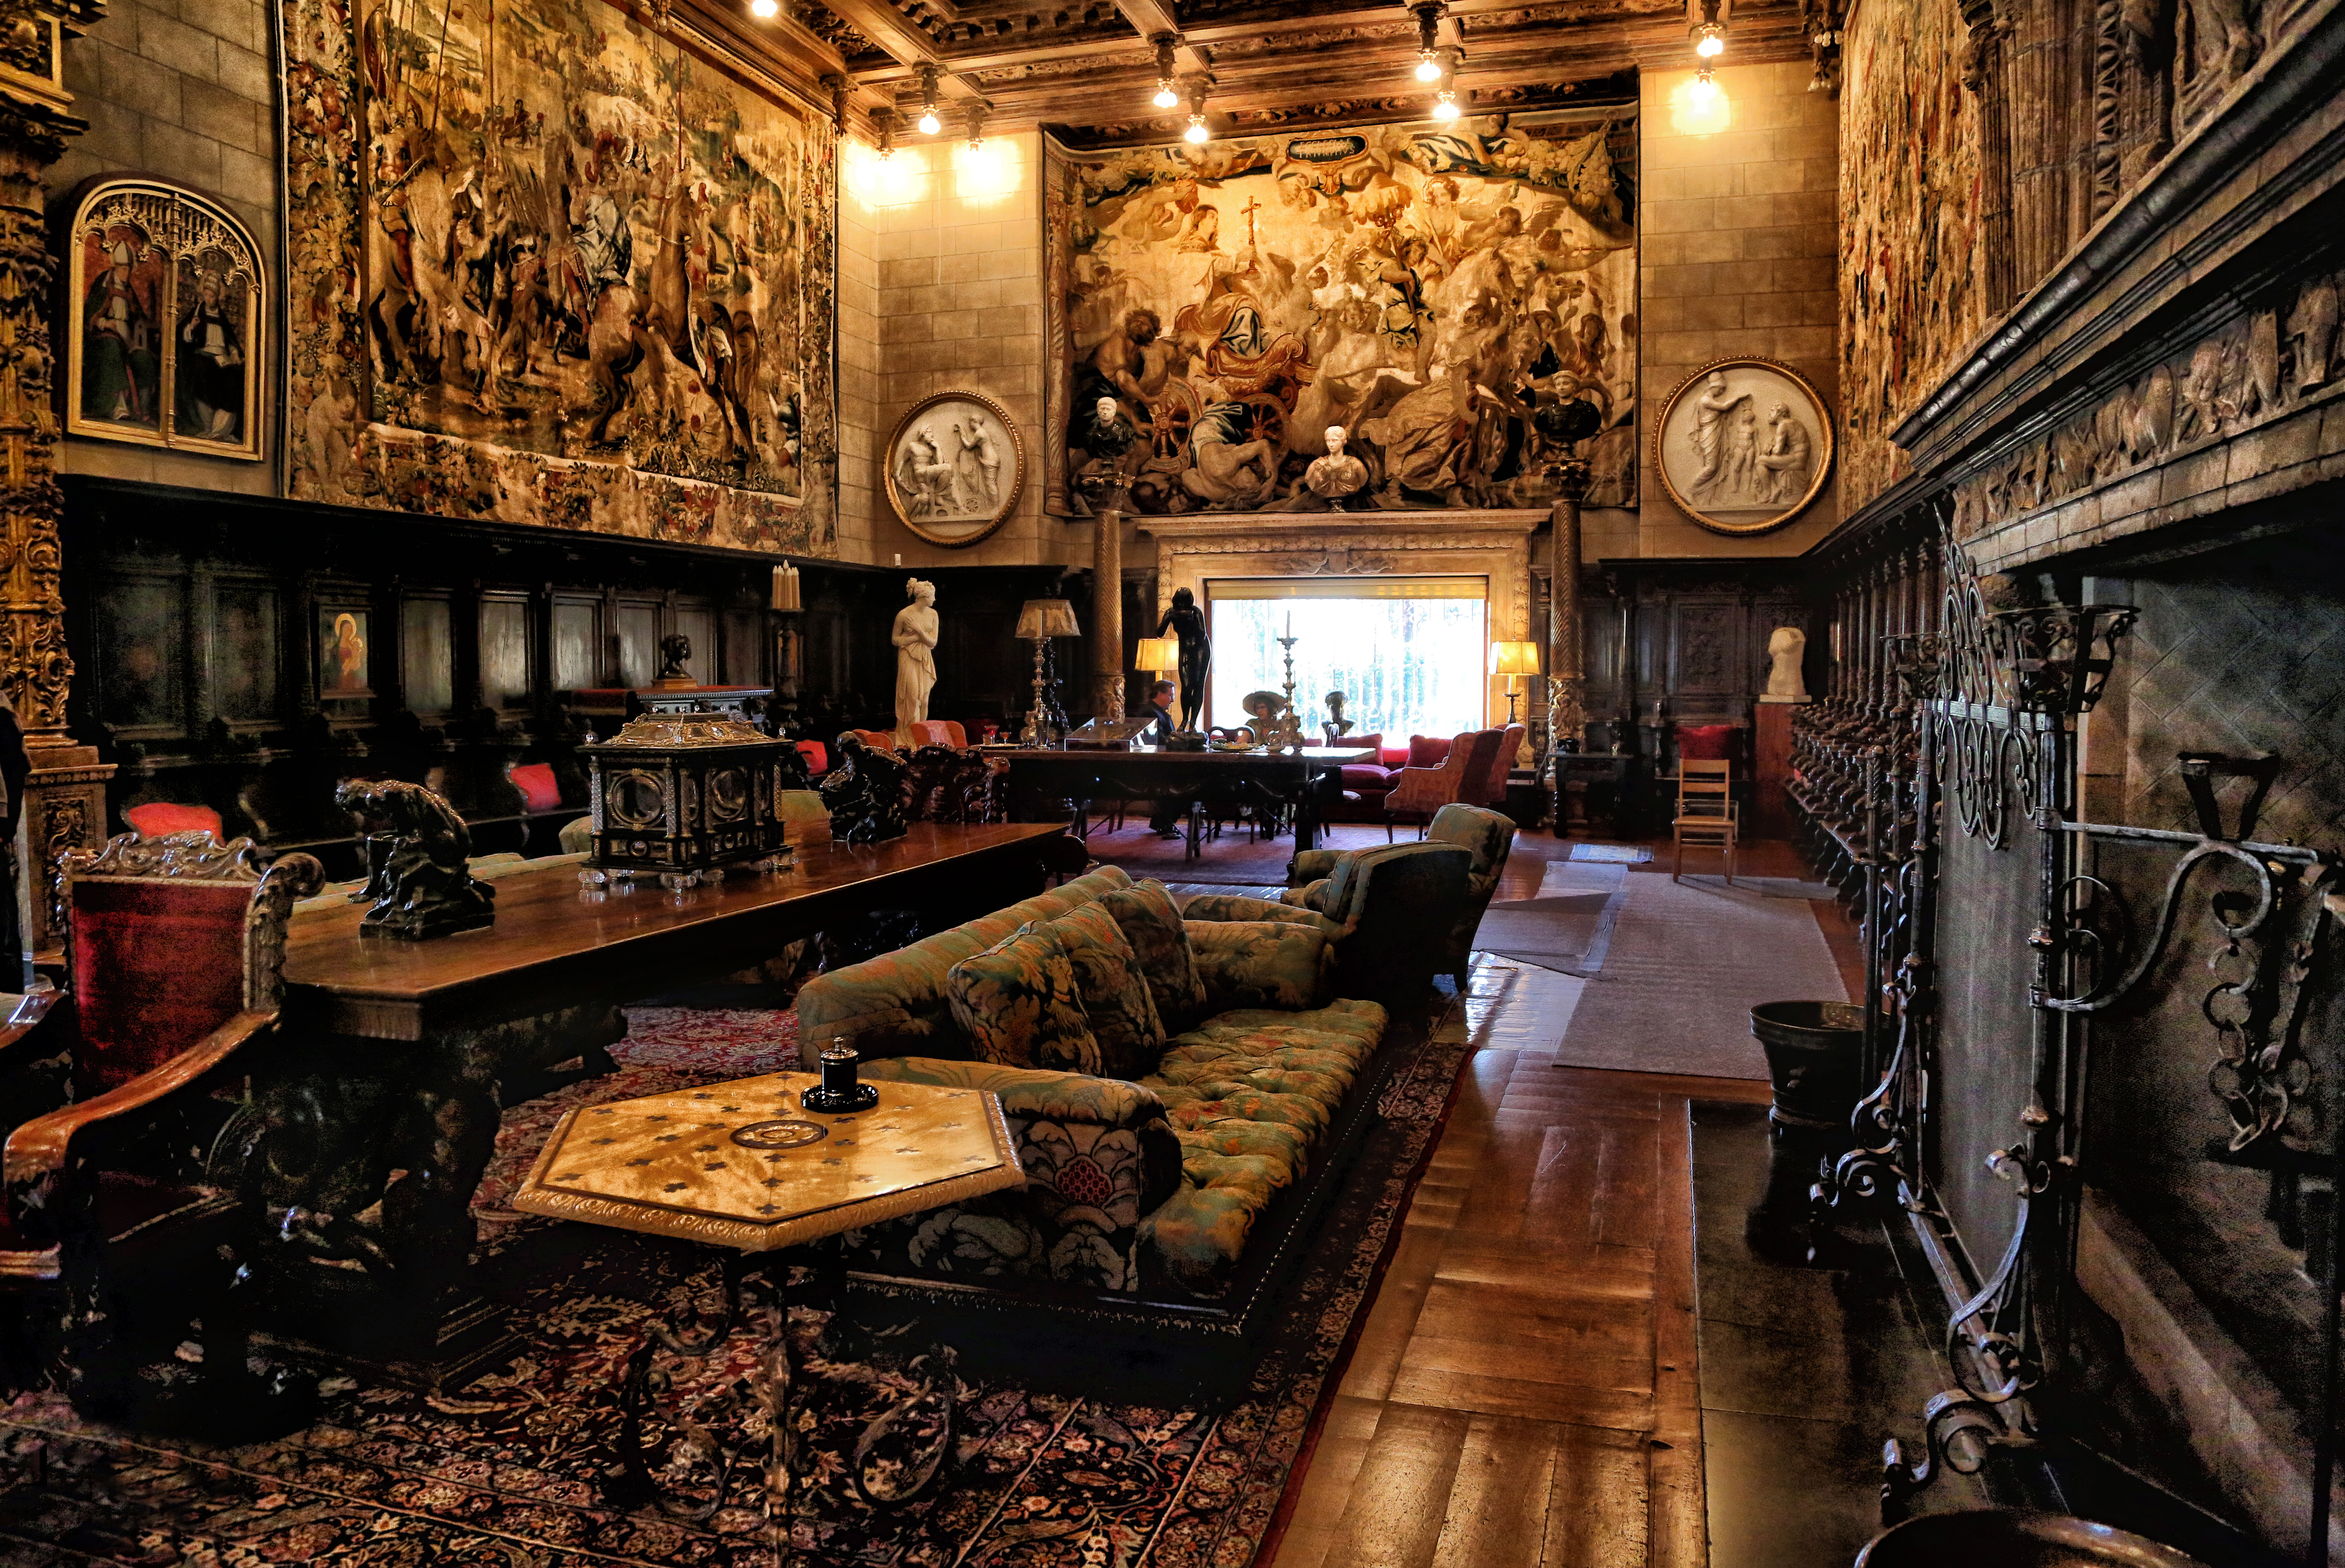 Hearst Castle facts